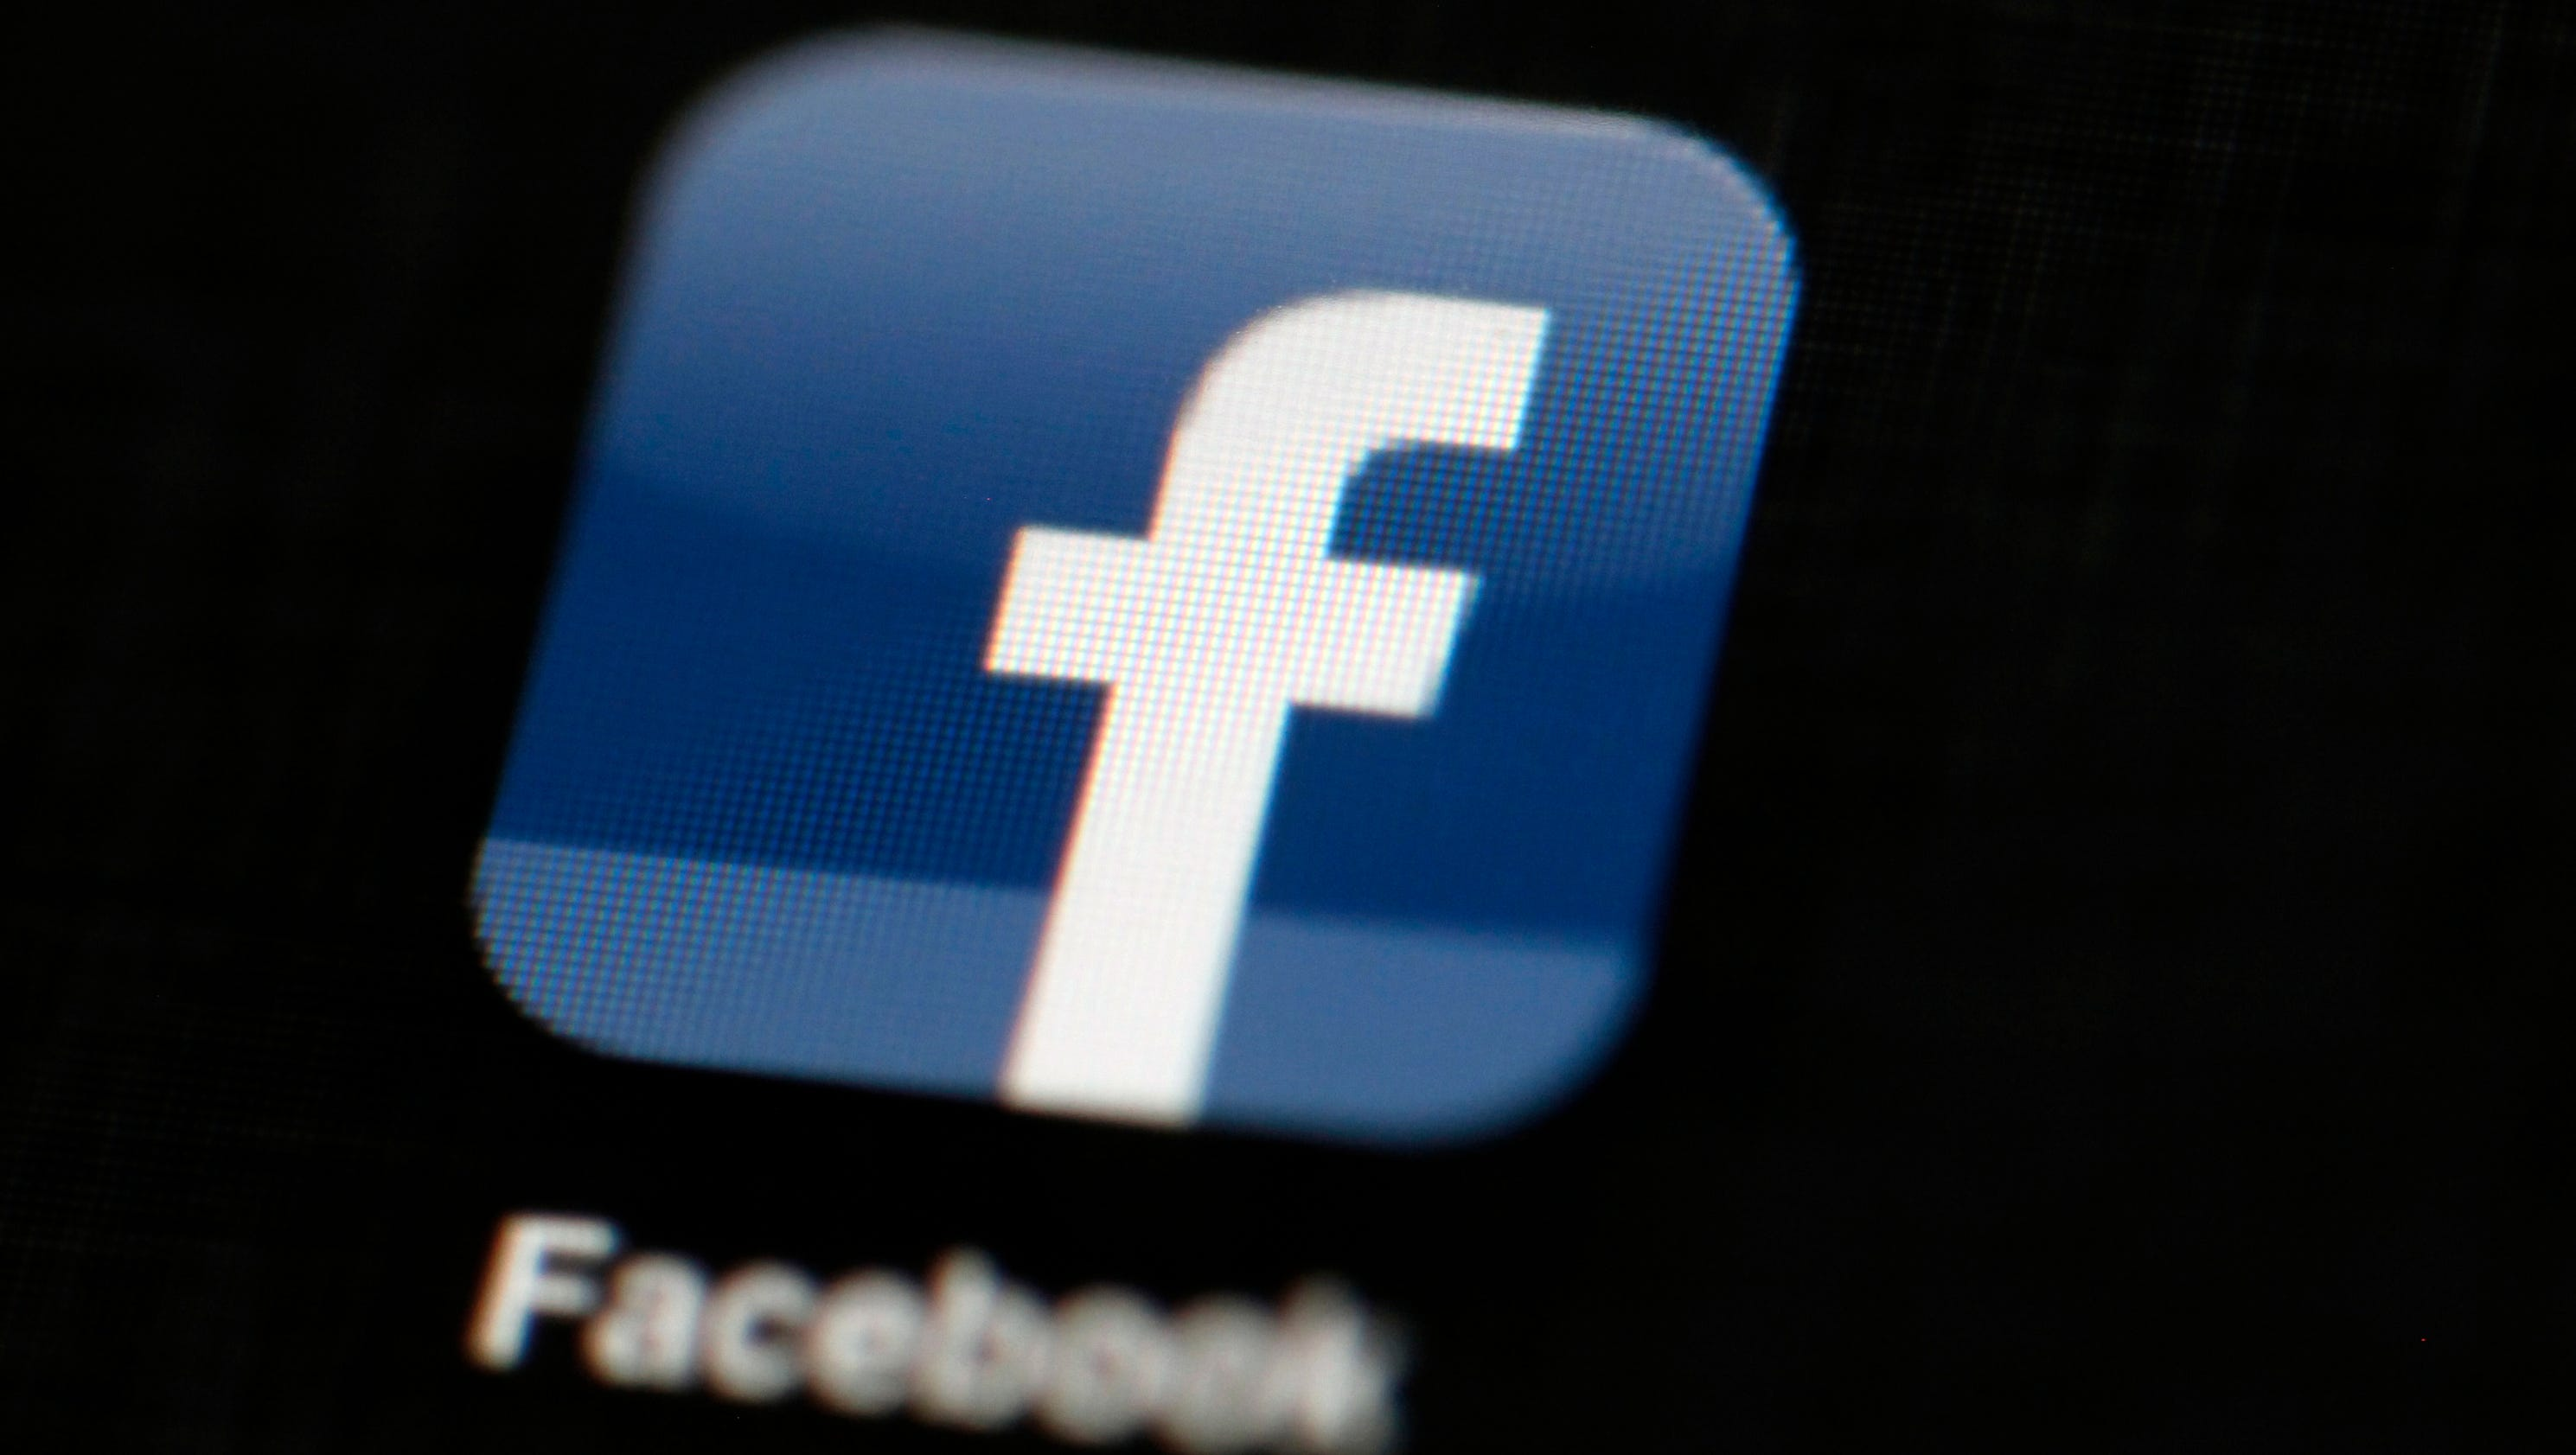 FACEBOOK autocomplete search shocks with sexually explicit suggestions